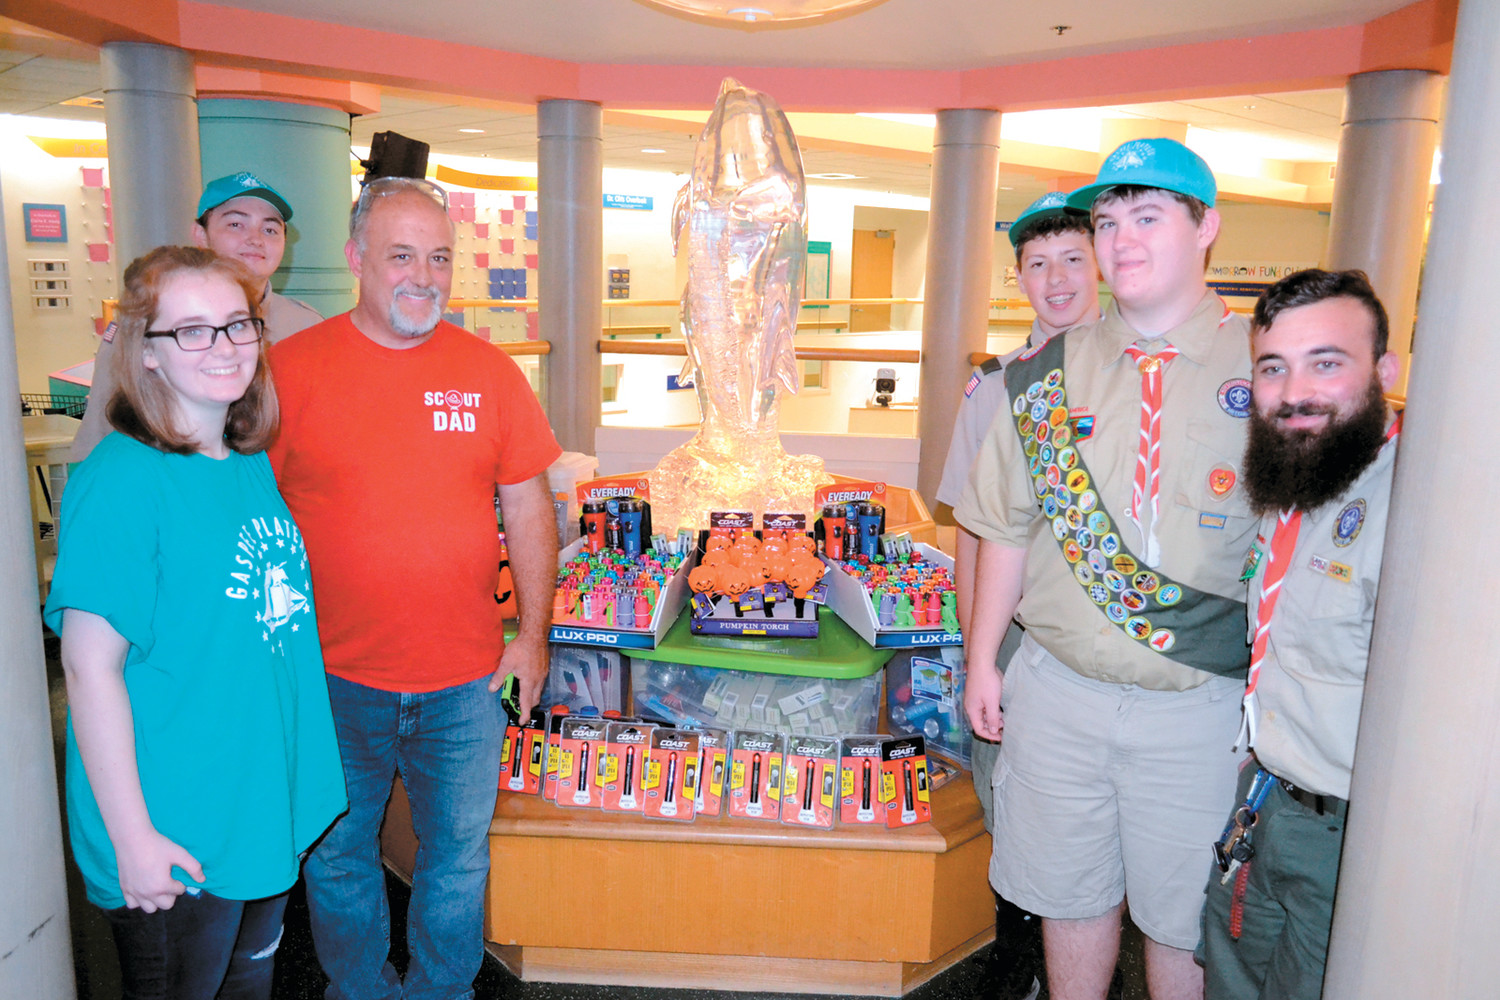 GUIDING LIGHTS: Eion Daniels (right middle) and his fellow Scouts Mitchell Carvalho (left middle), Ben McQuade (right, rear) and David Tibbitts (right front), his sister Mollee and father Tom prepare the flashlights for Hasbro staff on Thursday afternoon.